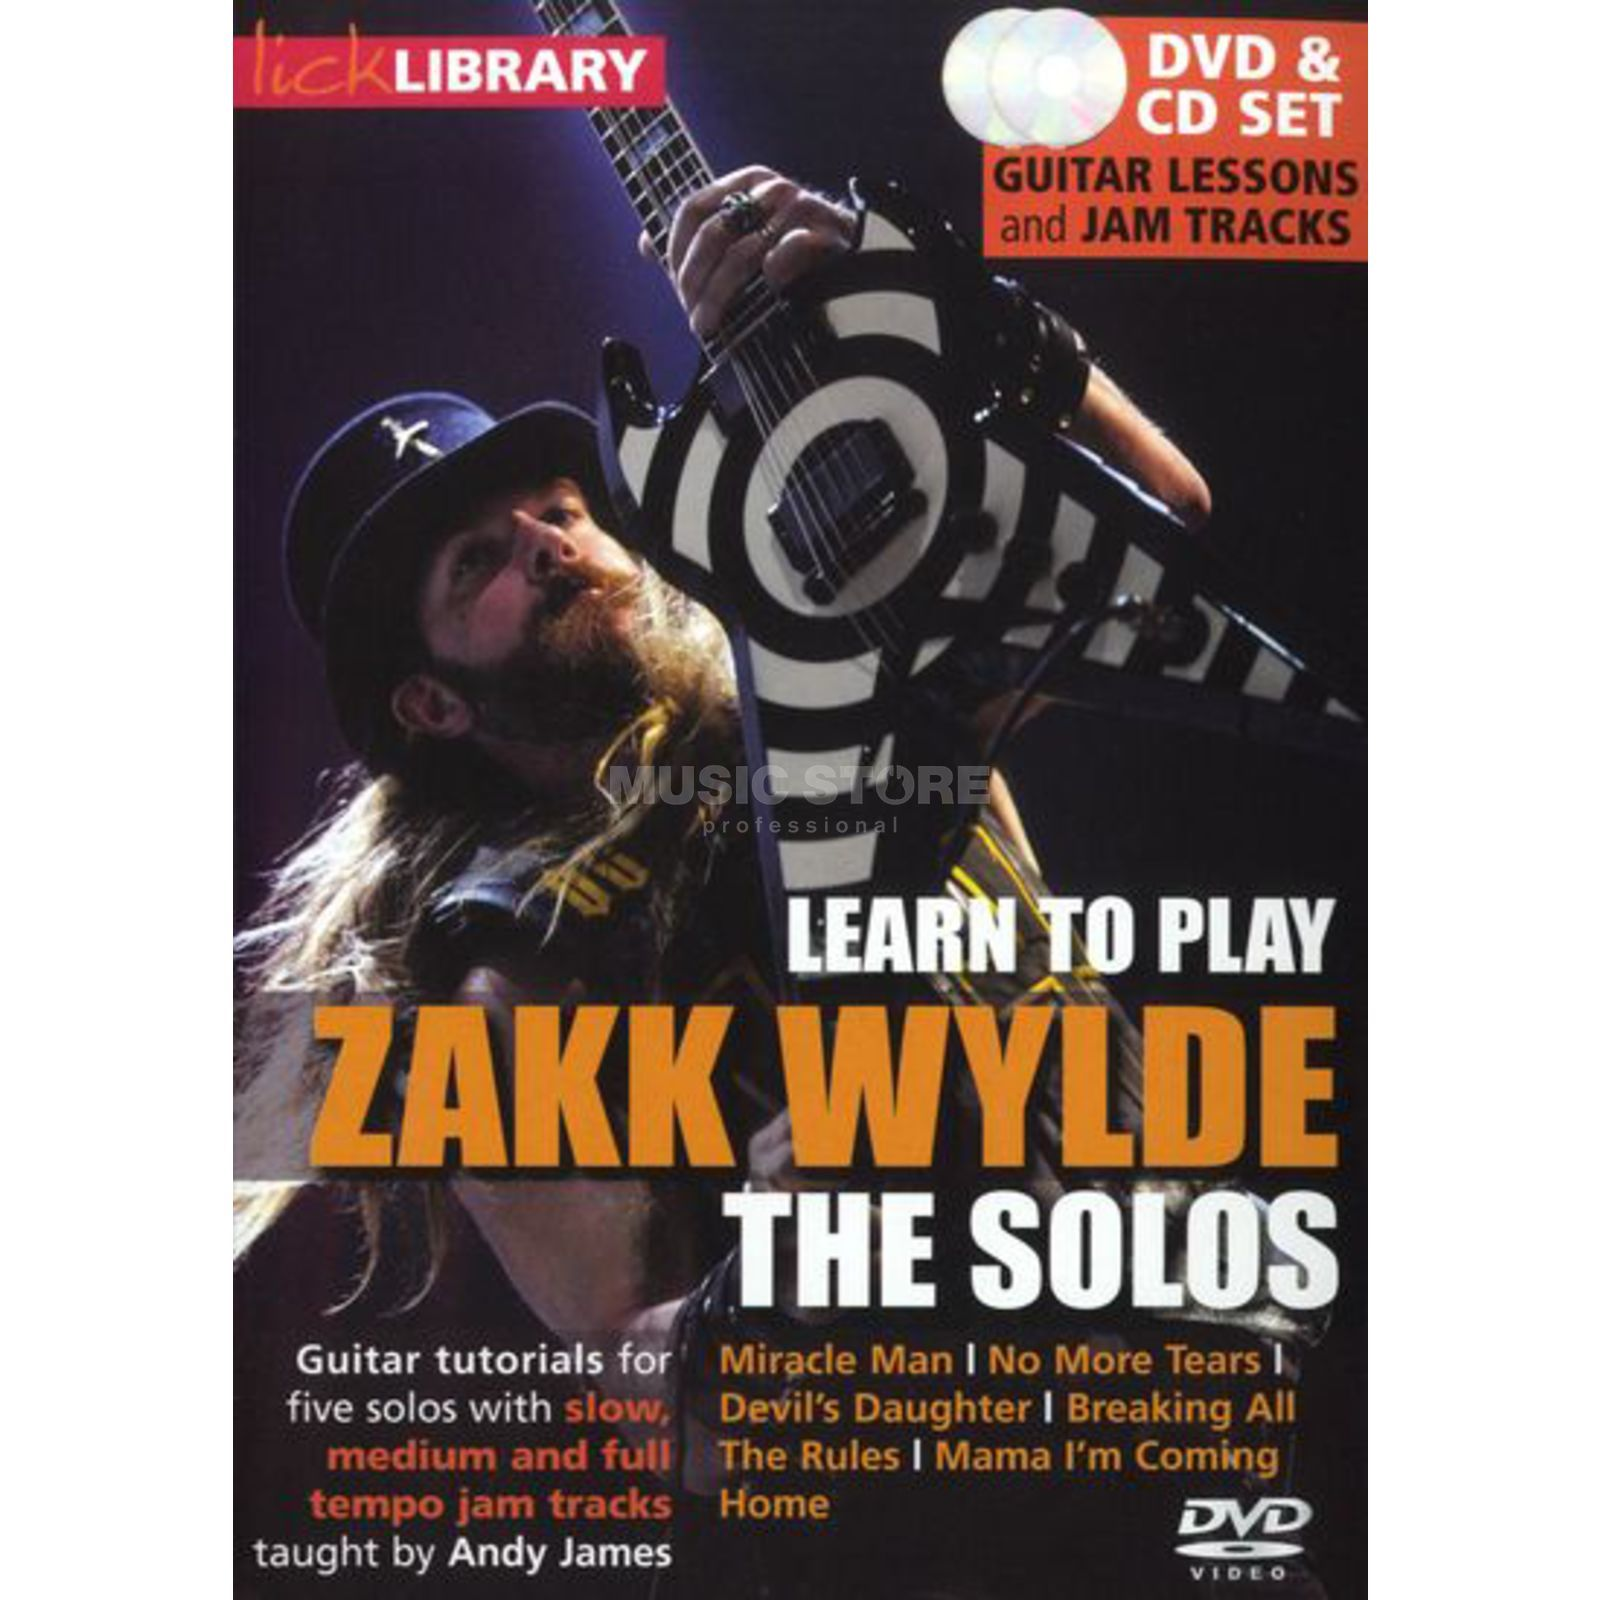 Roadrock International Lick Library: Learn To Play Zakk Wylde - The Solos DVD Product Image